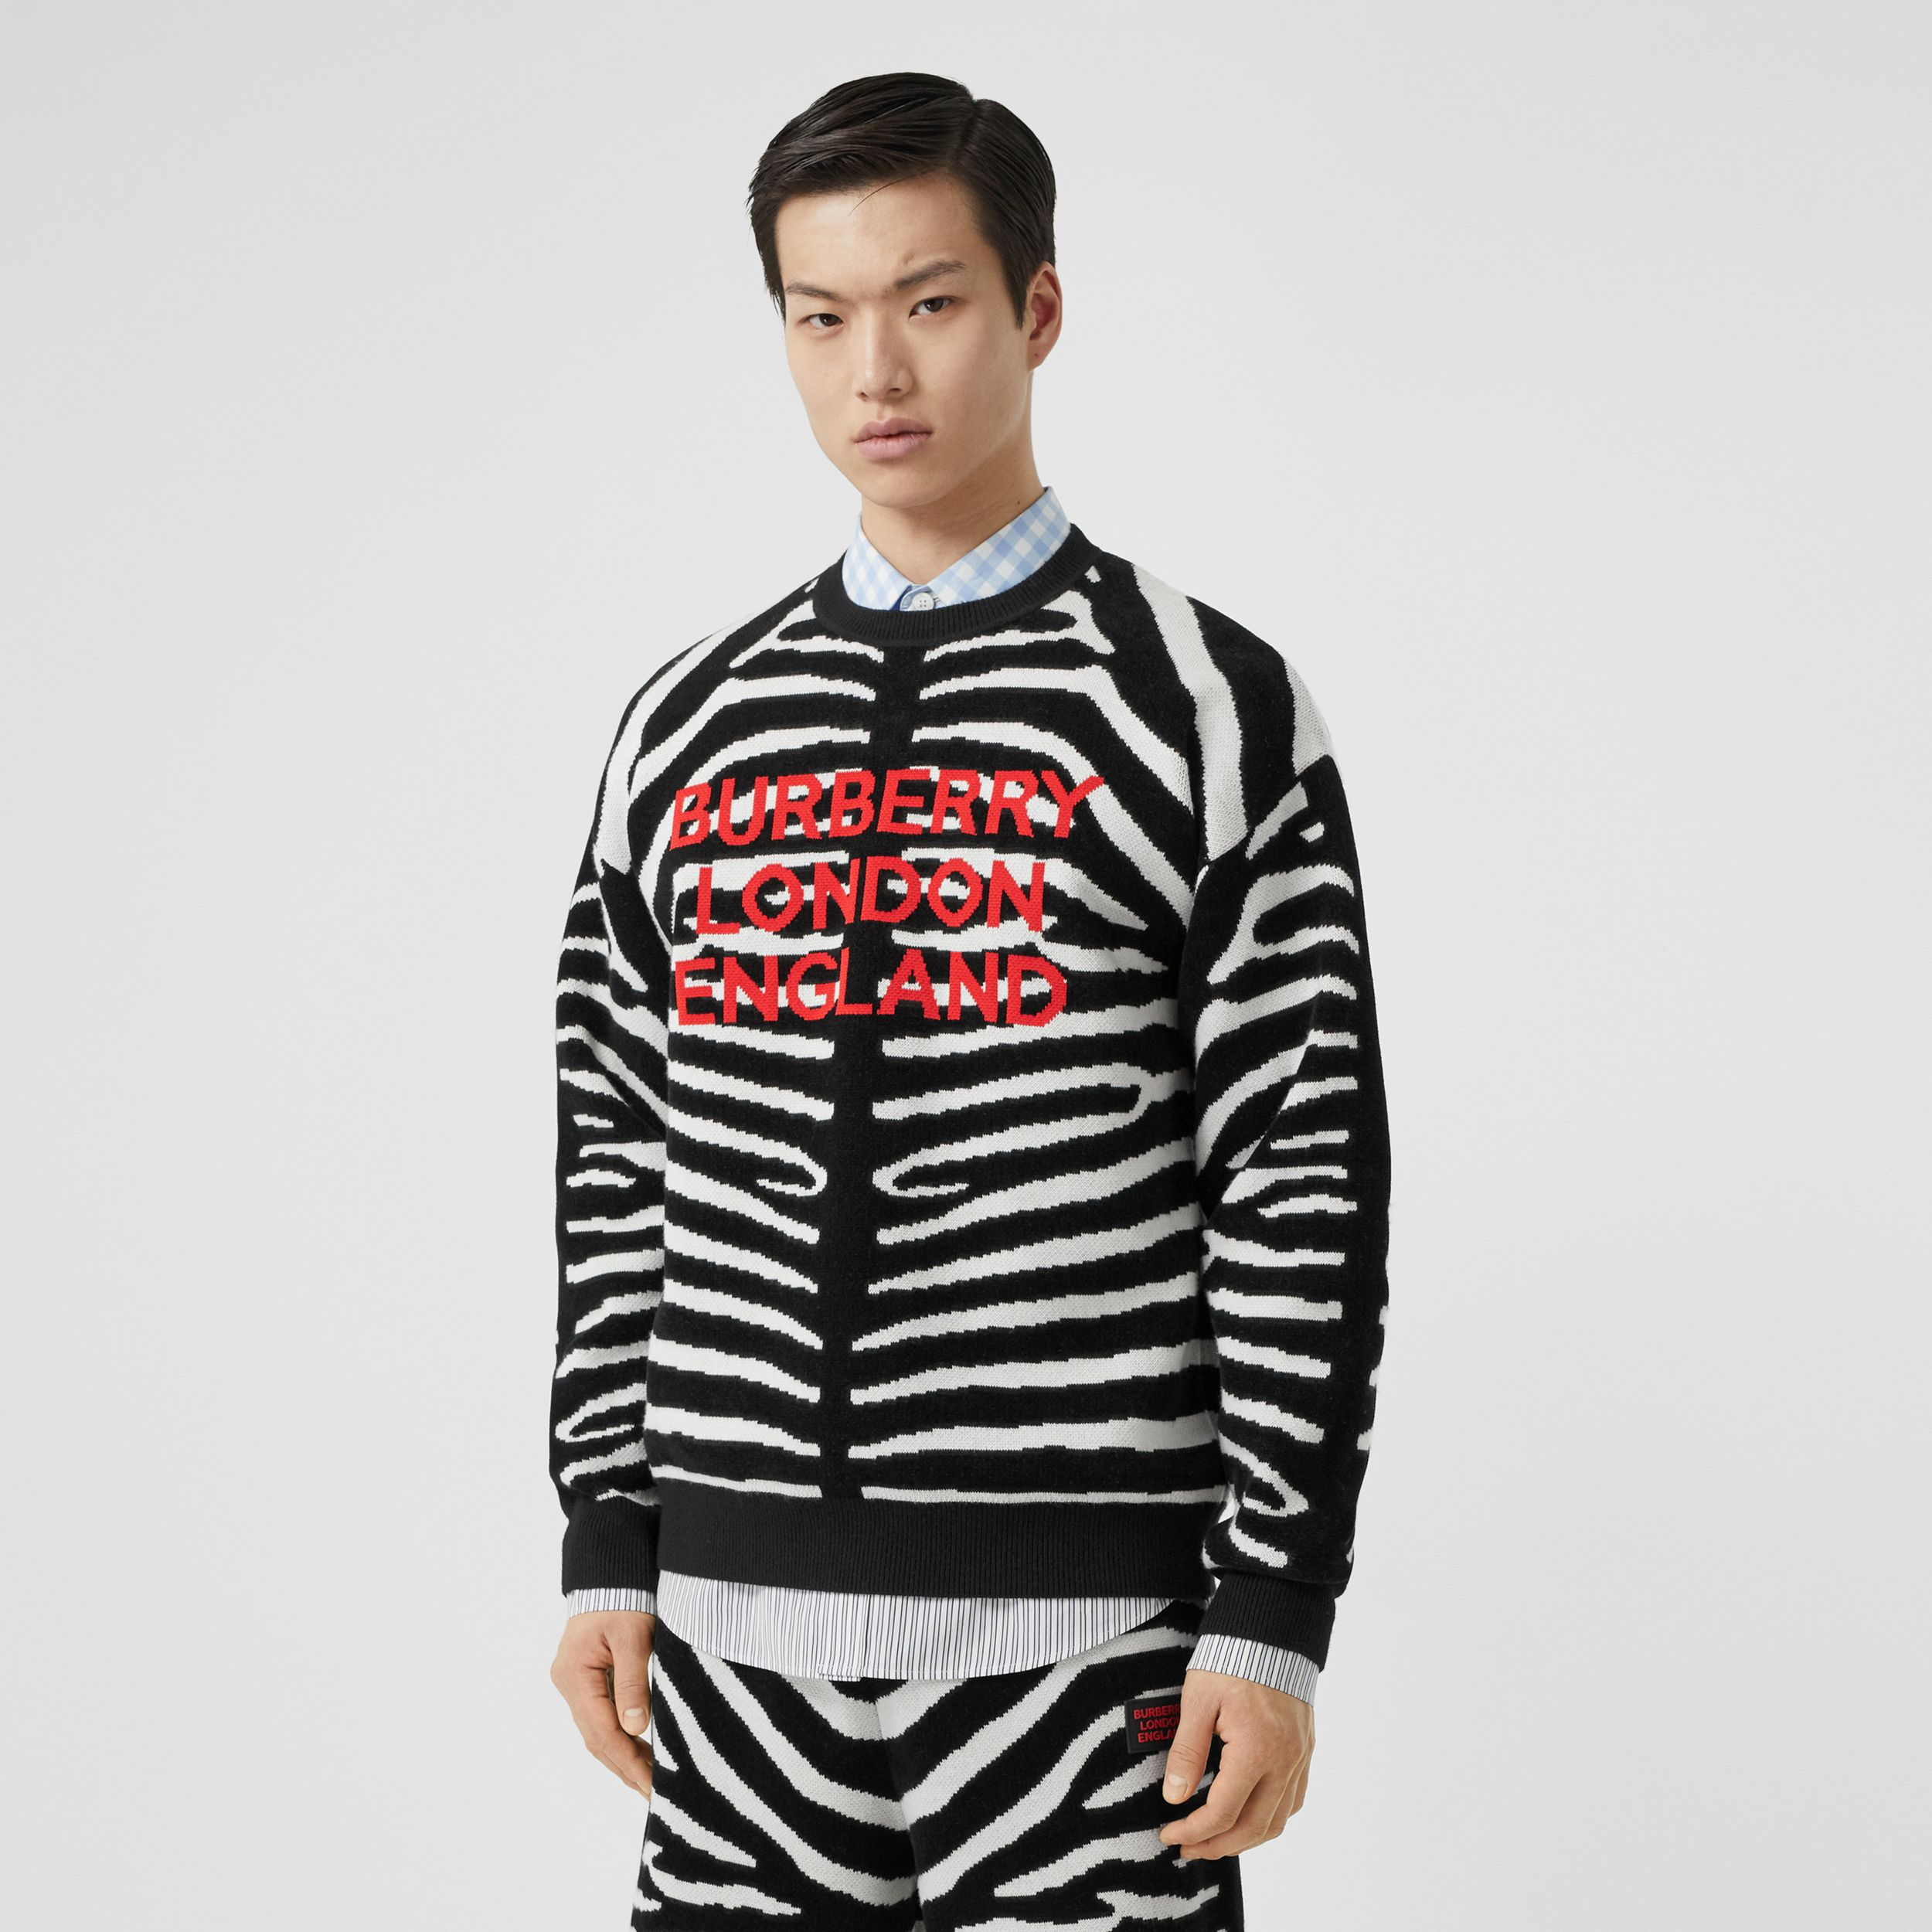 Zebra and Logo Wool Blend Jacquard Sweater in Black - Men | Burberry - 1